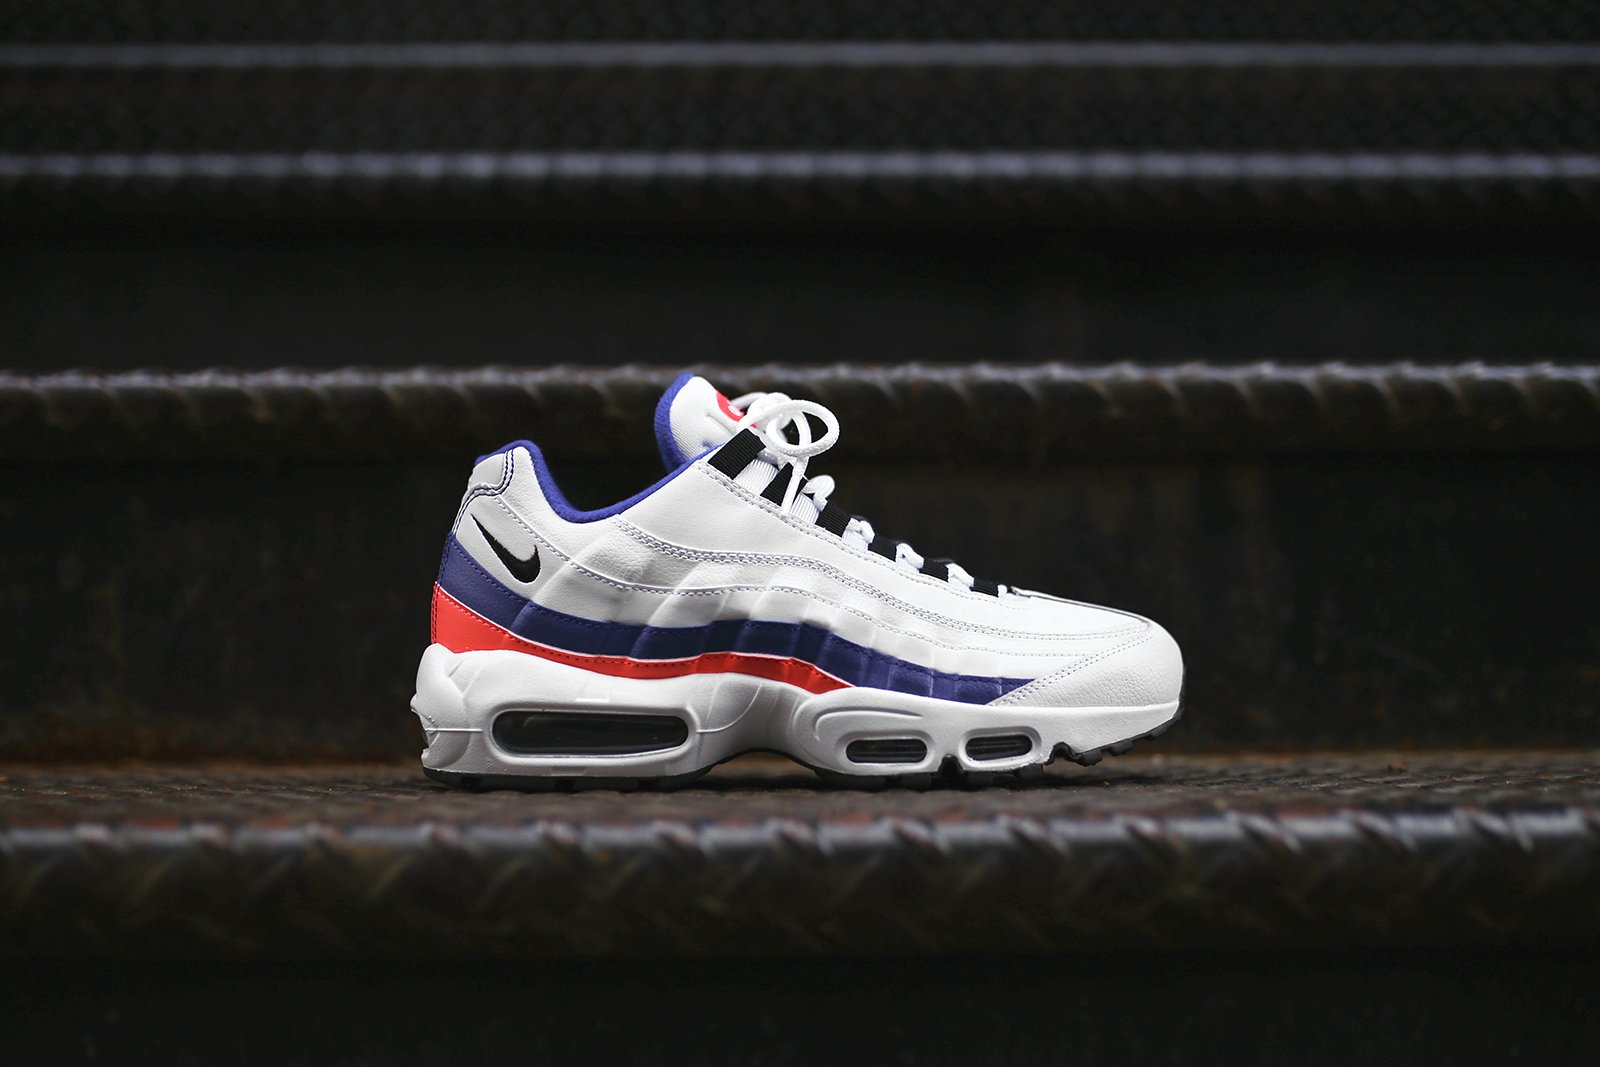 5344cebdf7 Very Goods | Nike Air Max 95 Essential - White / Blue / Red – Kith